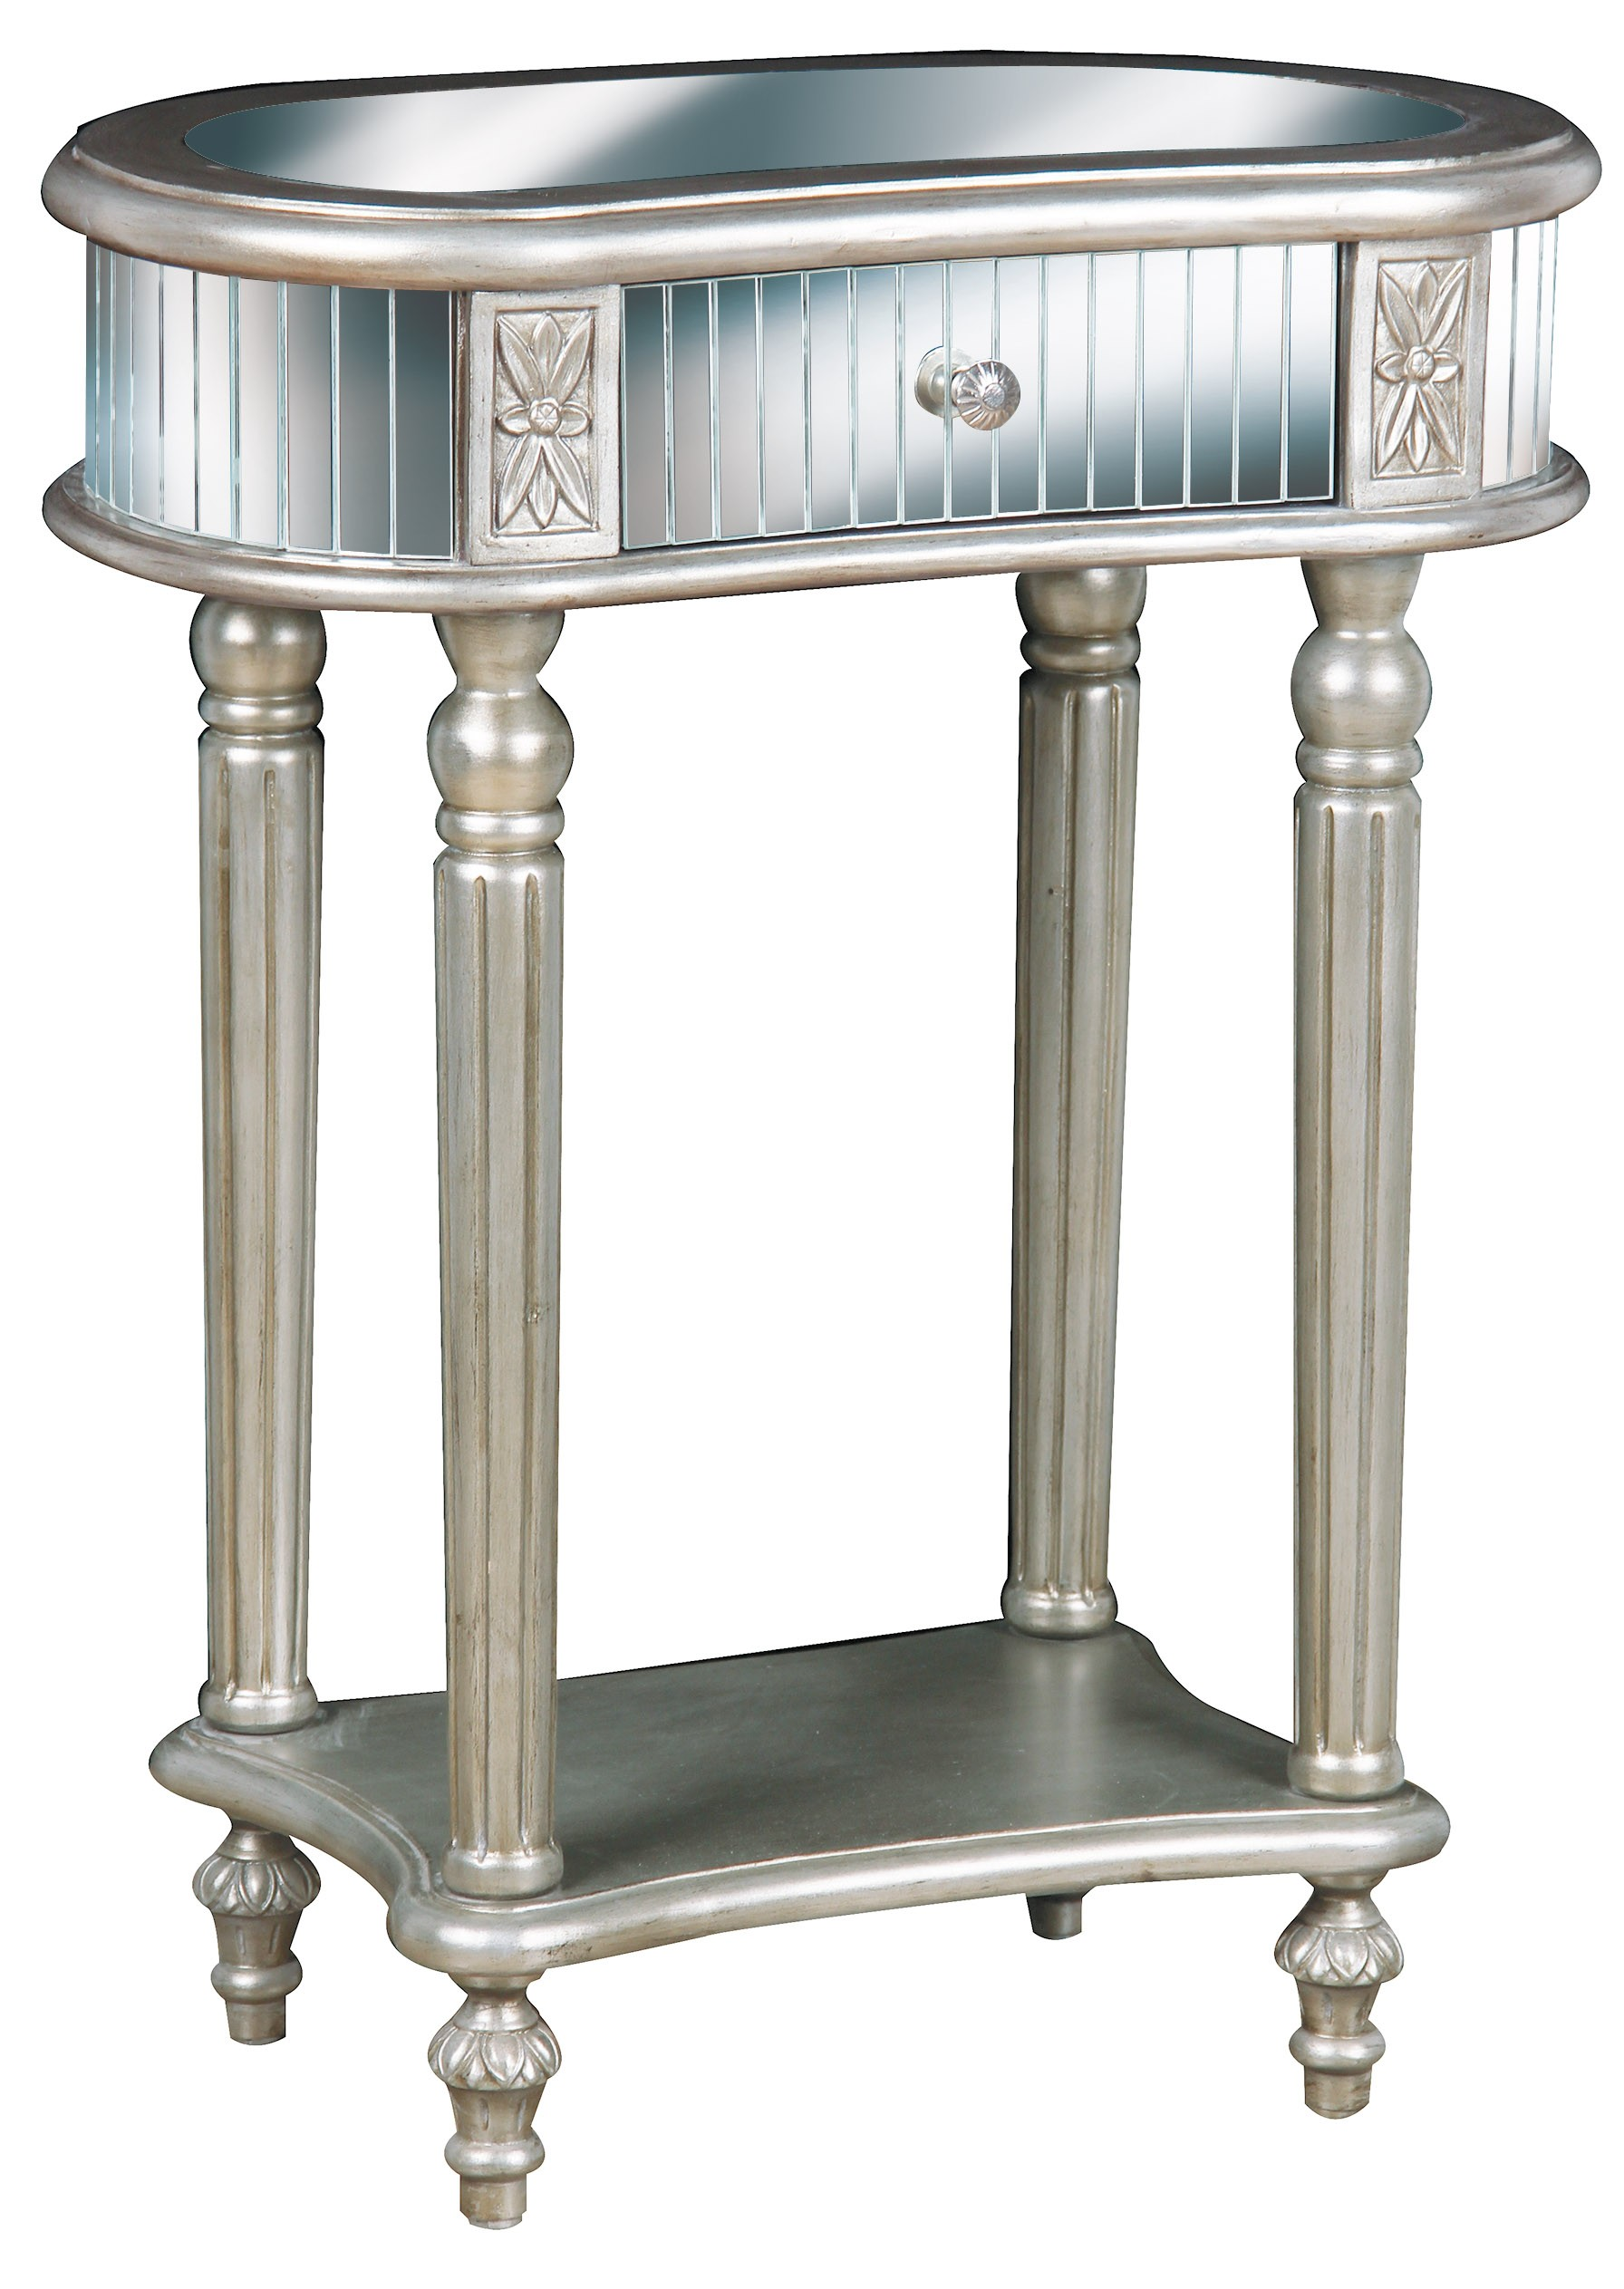 small mirrored accent table with drawer and shelves plus pedestal mirage threshold folding snack pet grooming tall grey lamps meyda tiffany ceiling light inch legs chandelier